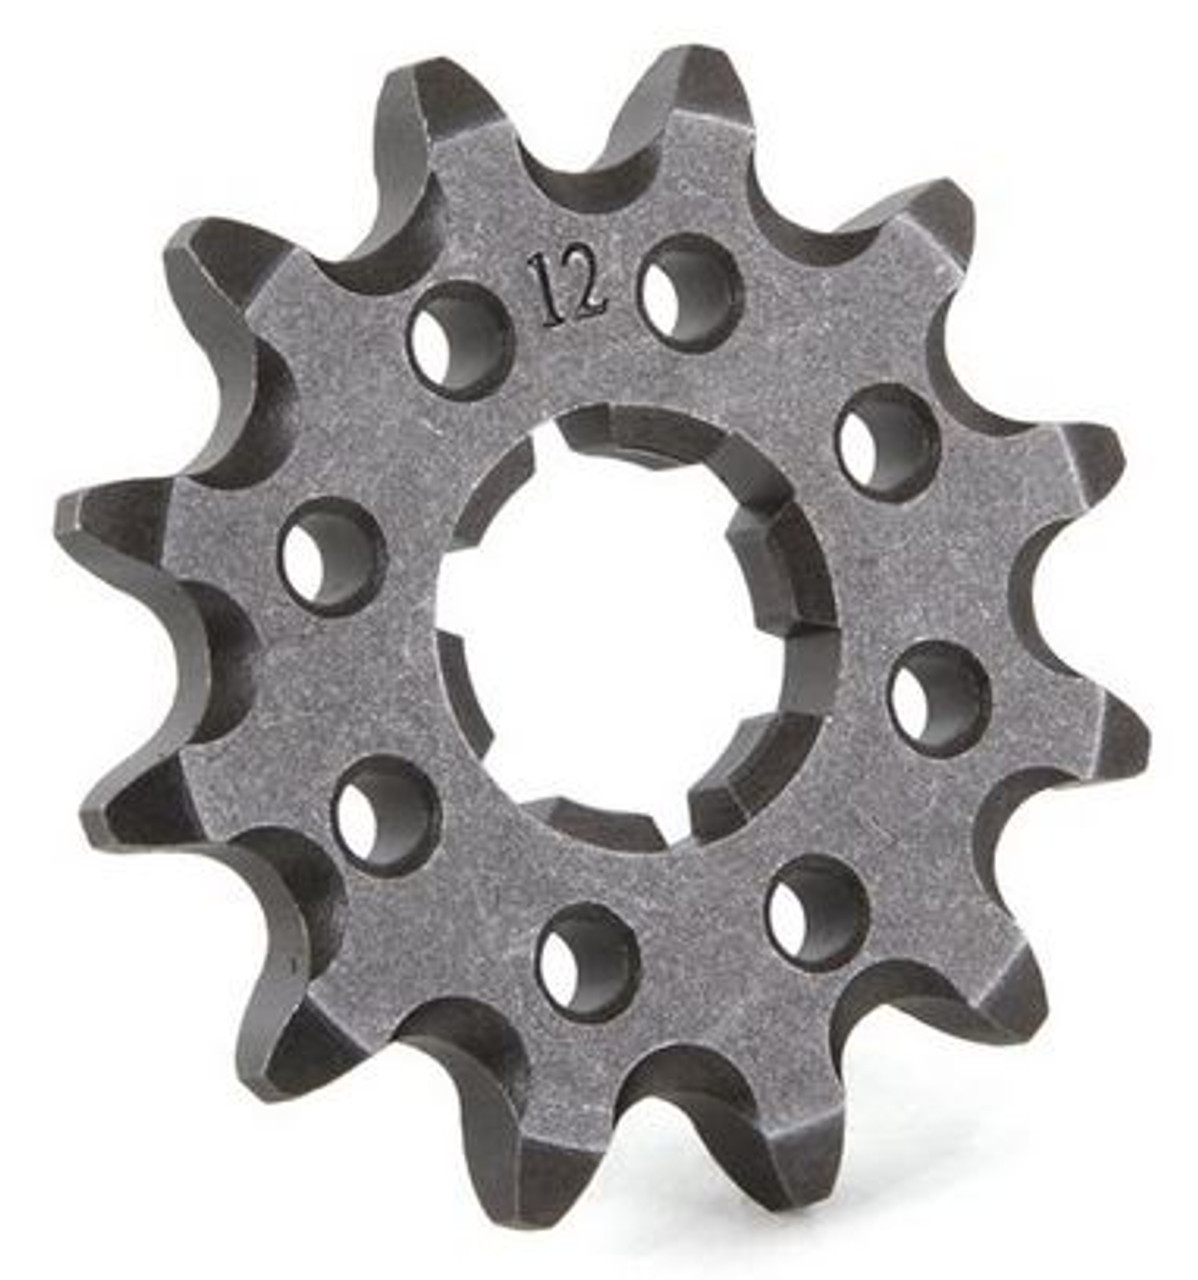 YAMAHA YZ65 2018-2021 FRONT SPROCKET STEEL 13 or 14 TOOTH PROX